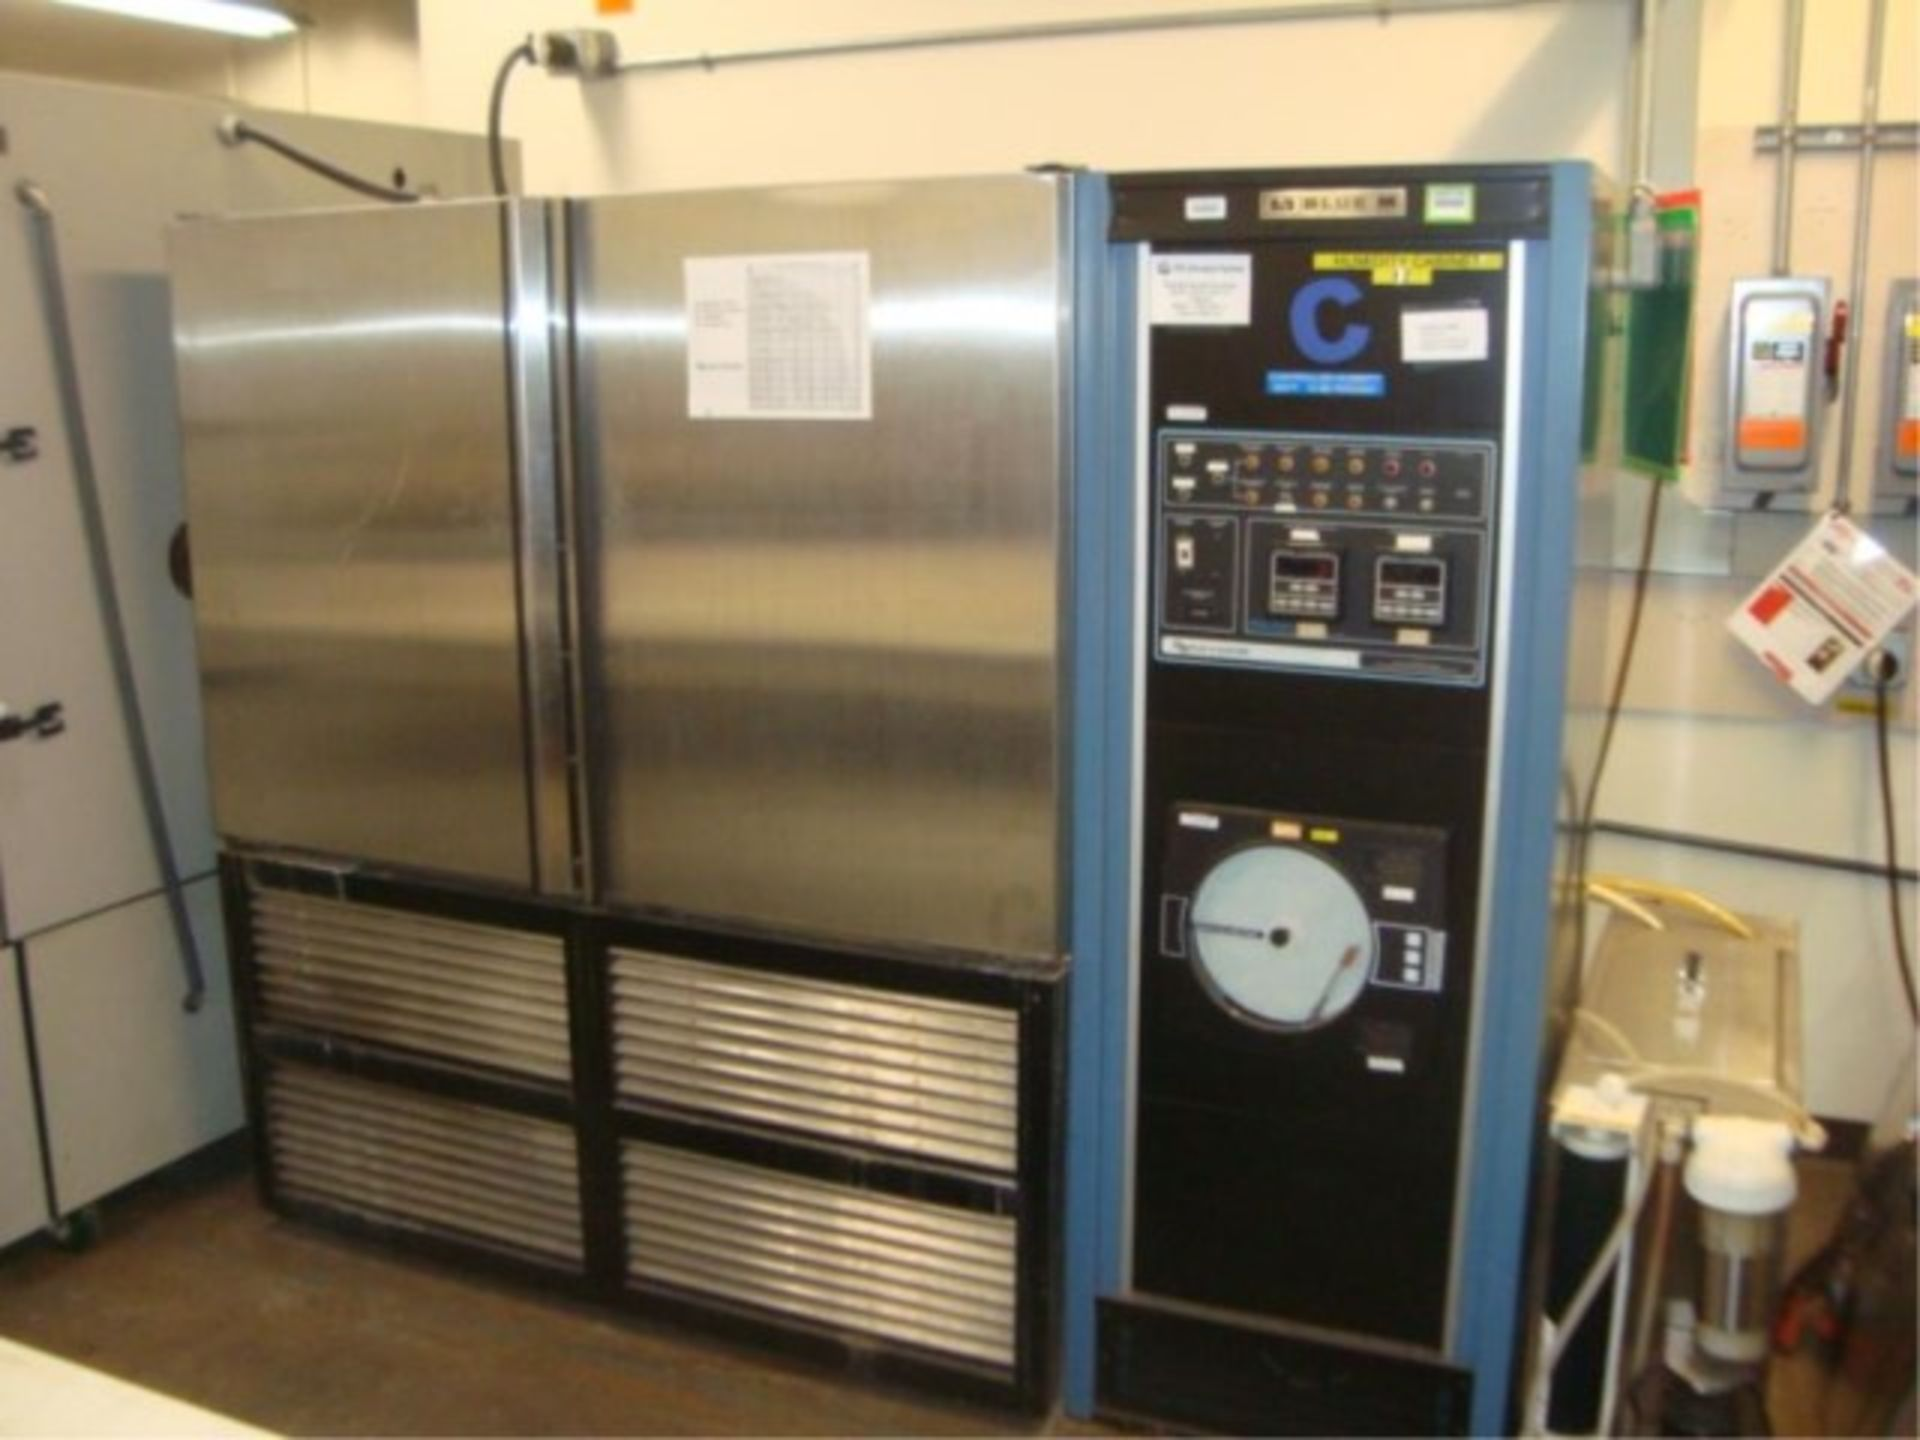 Humidity Test Chamber - Image 12 of 12